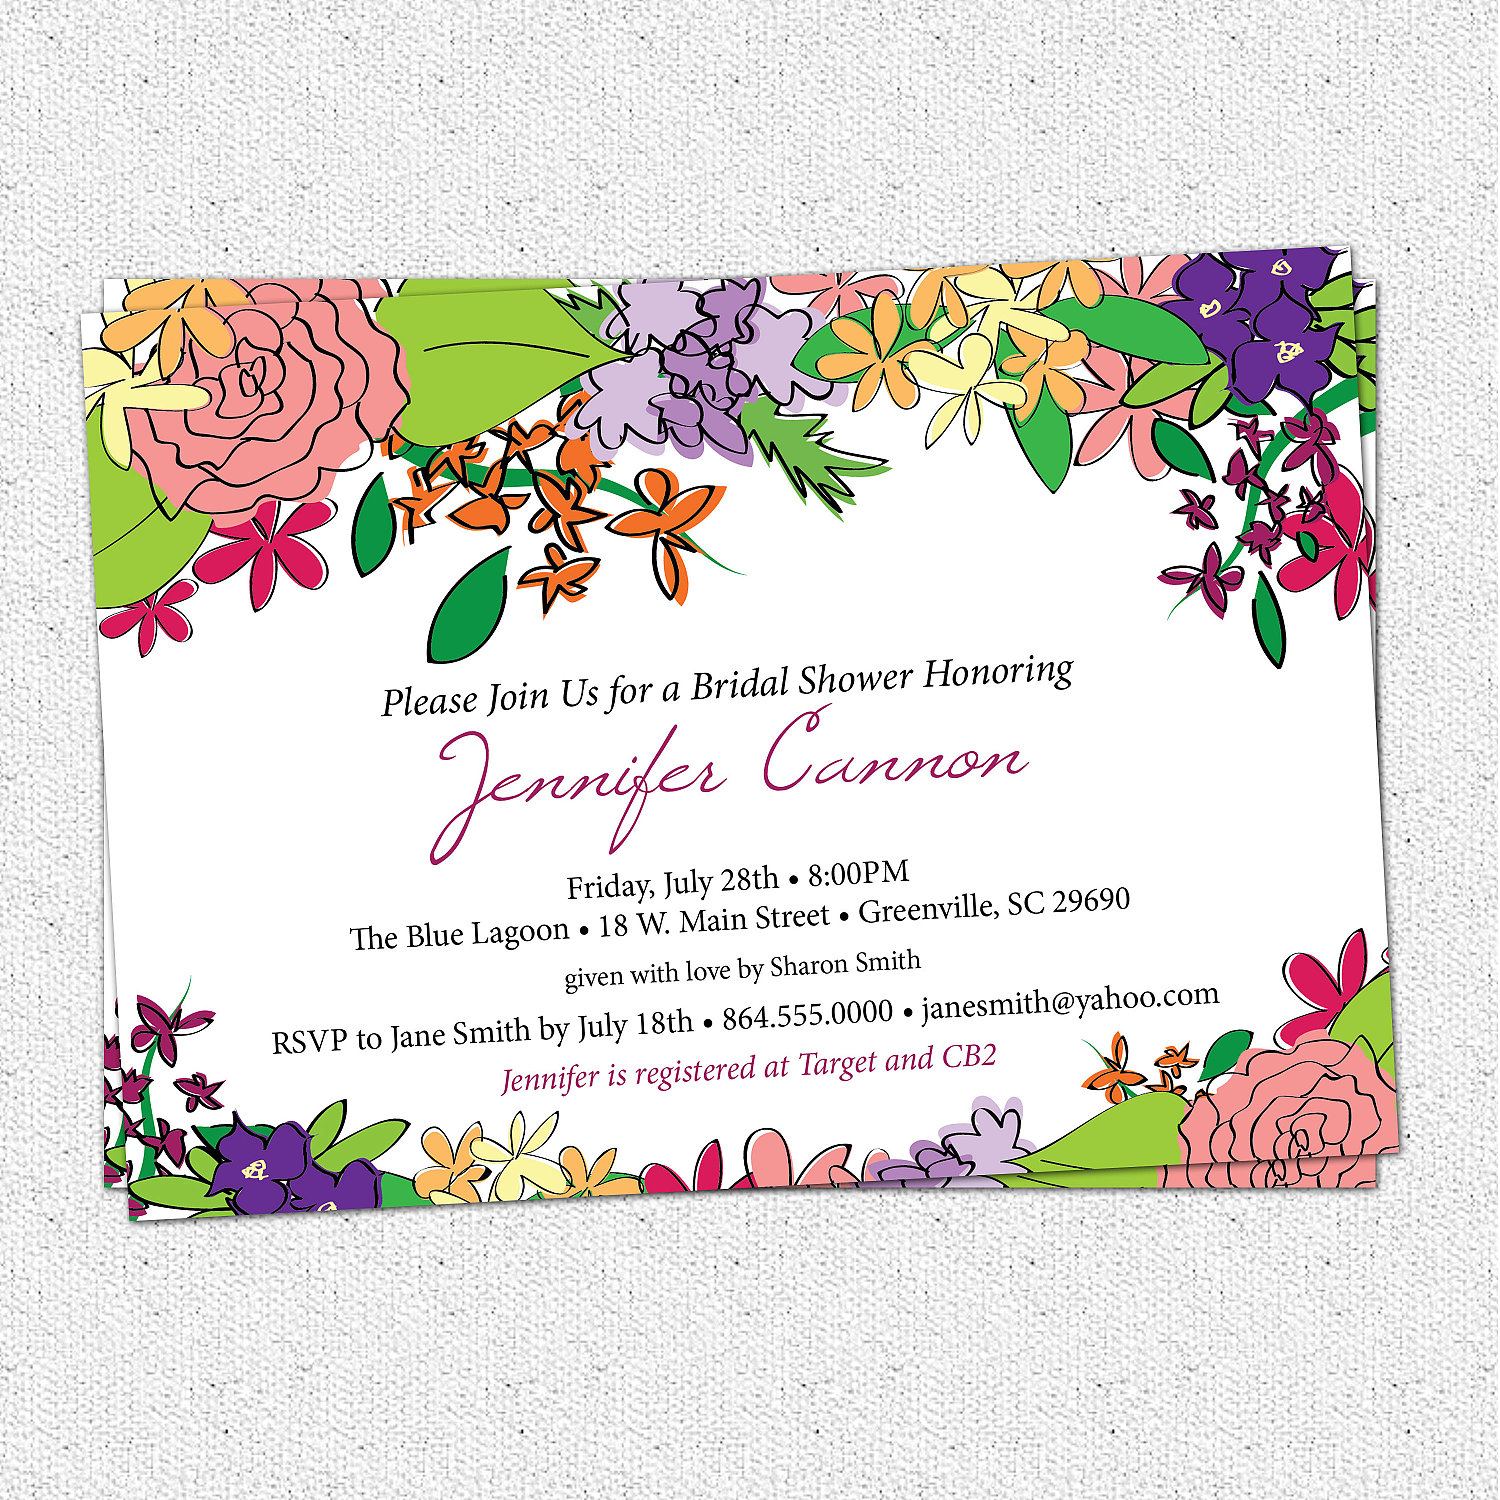 Bridal shower invitations floral garden flowers shabby chic bridal shower invitations floral garden flowers shabby chic roses baby shower filmwisefo